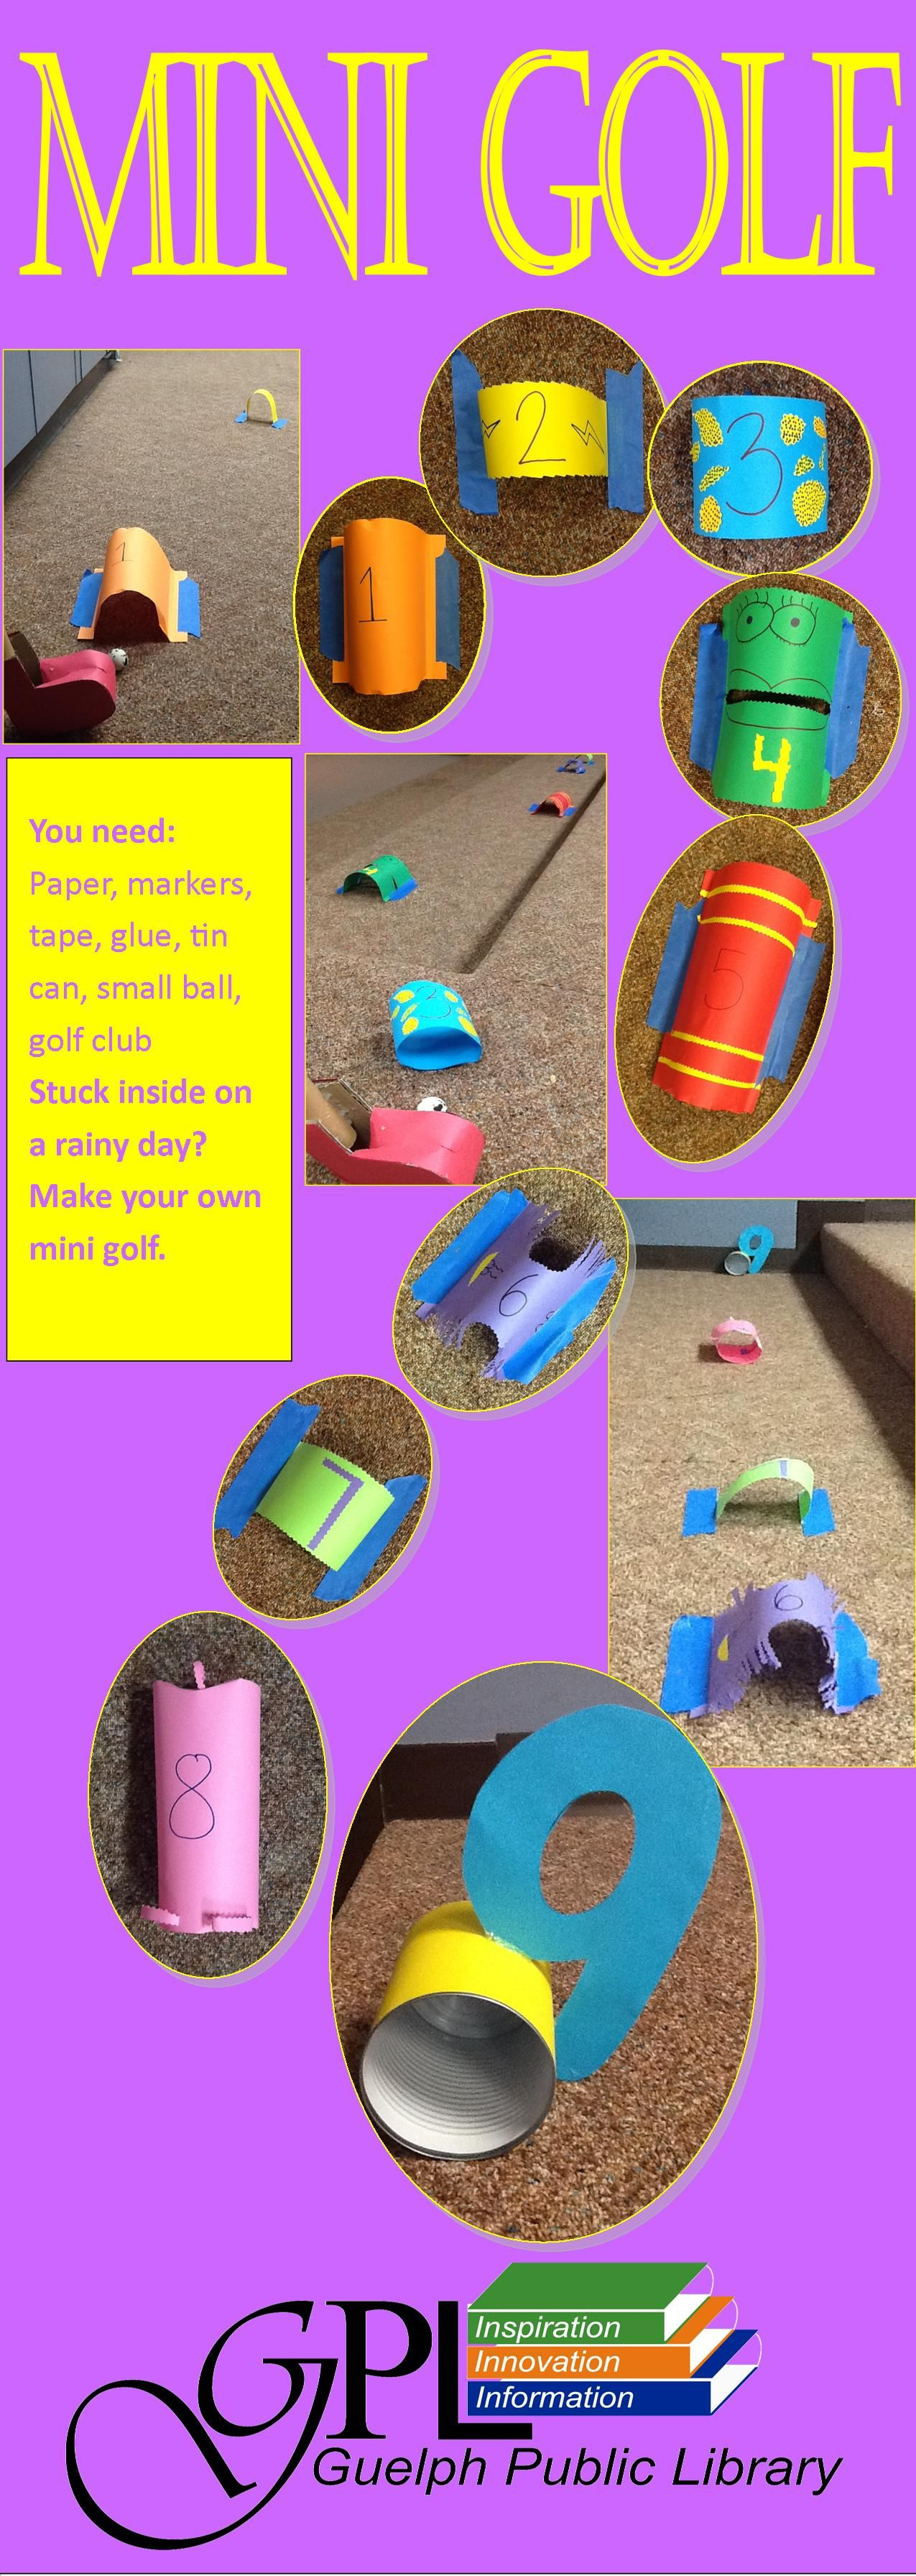 Stuck inside on a rainy day? Make your own mini golf